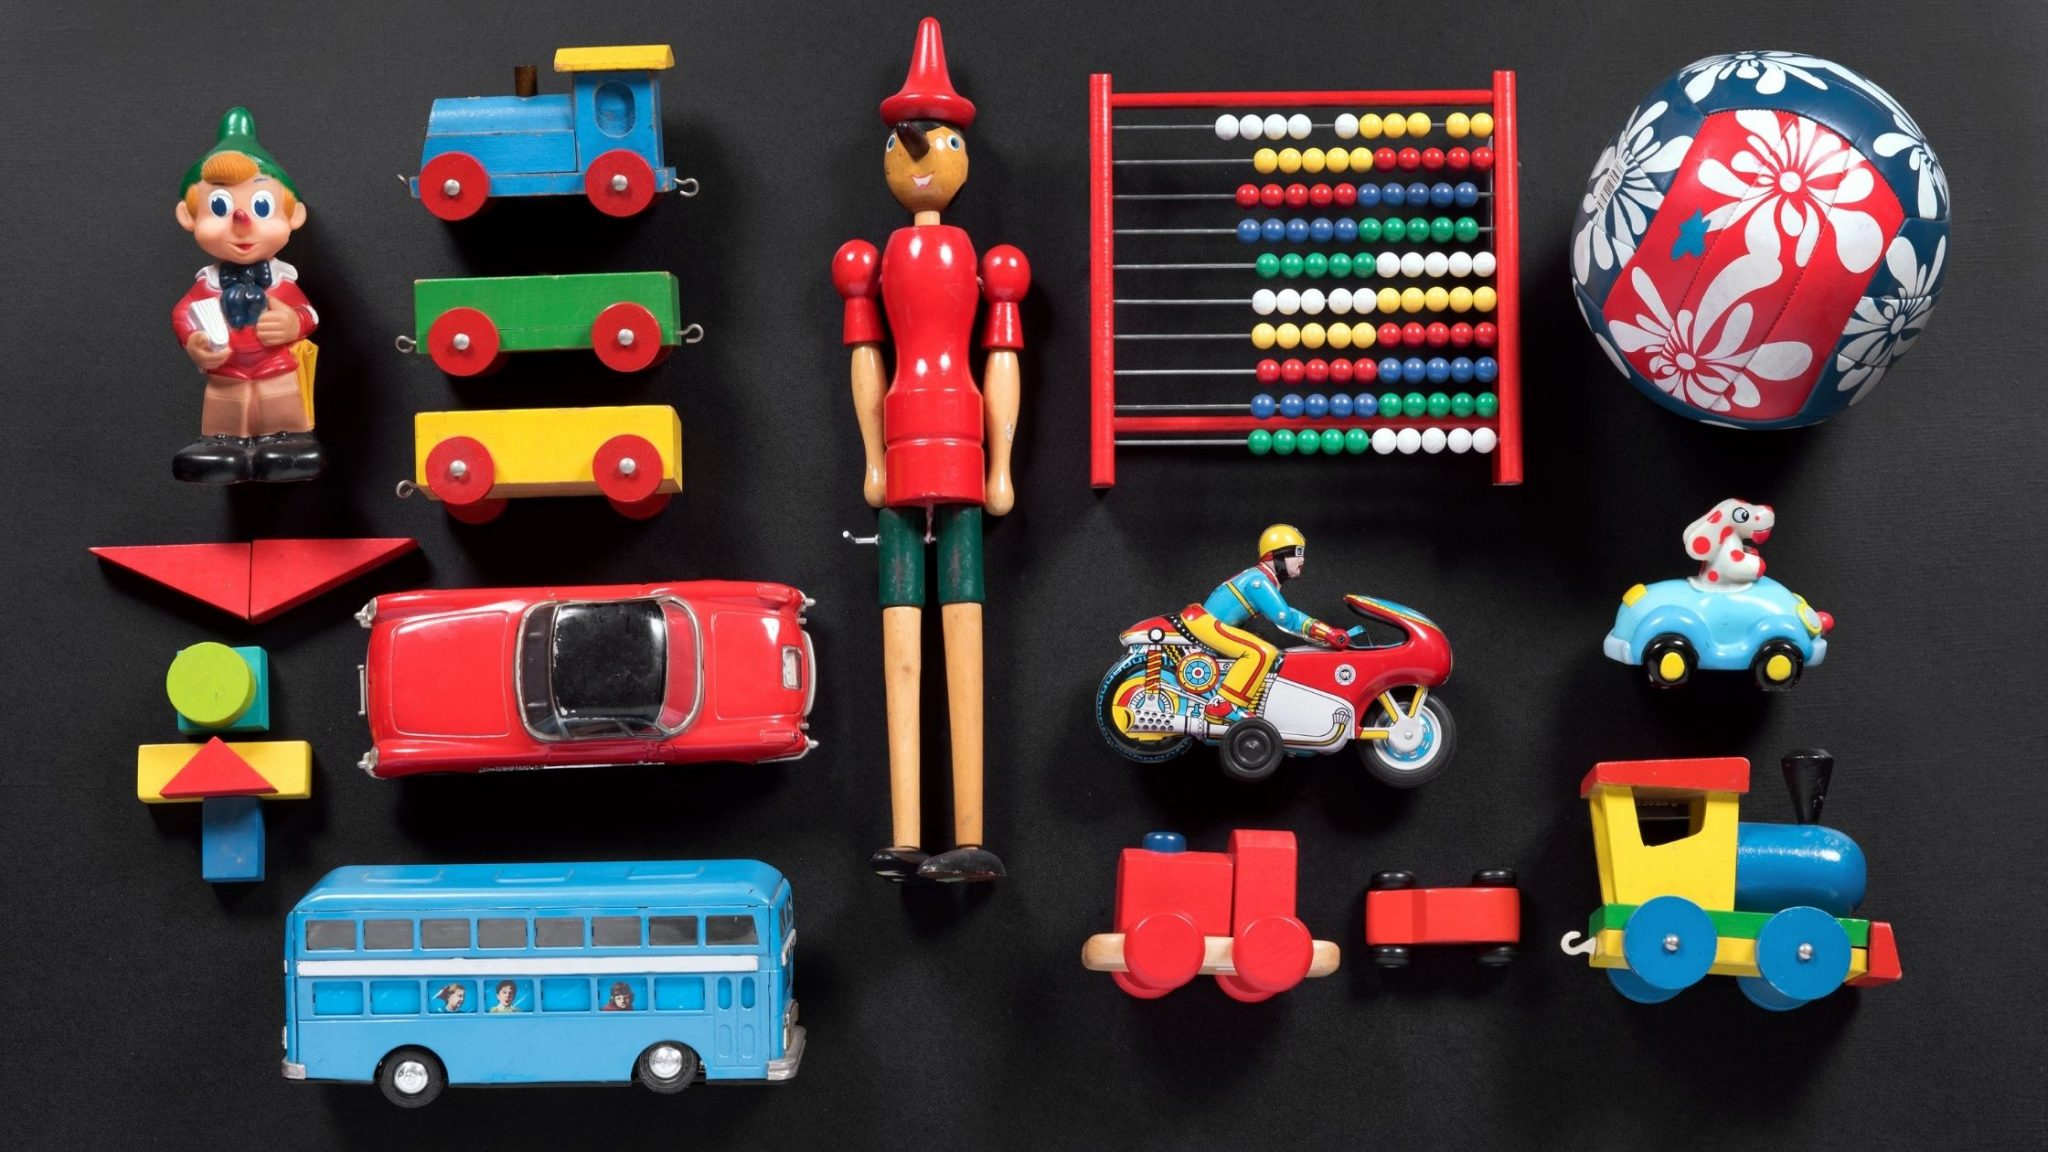 Colorful collection of cute vintage toys